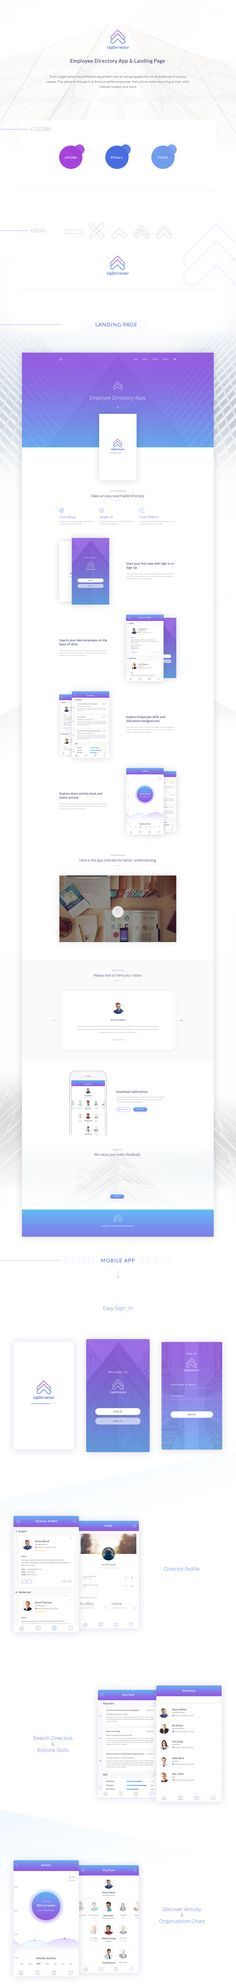 Hi,This is my new complete project. I have gone through from logo design to apps and landing page design. It is mainly an Employee Directory app. Have also a landing page. Hope you like my design and provide your valuable feed back. App Landing Page, Landing Page Design, Web Design, Logo Design, Graphic Design, Mobile App Design, Mobile Ui, User Experience Design, Application Design